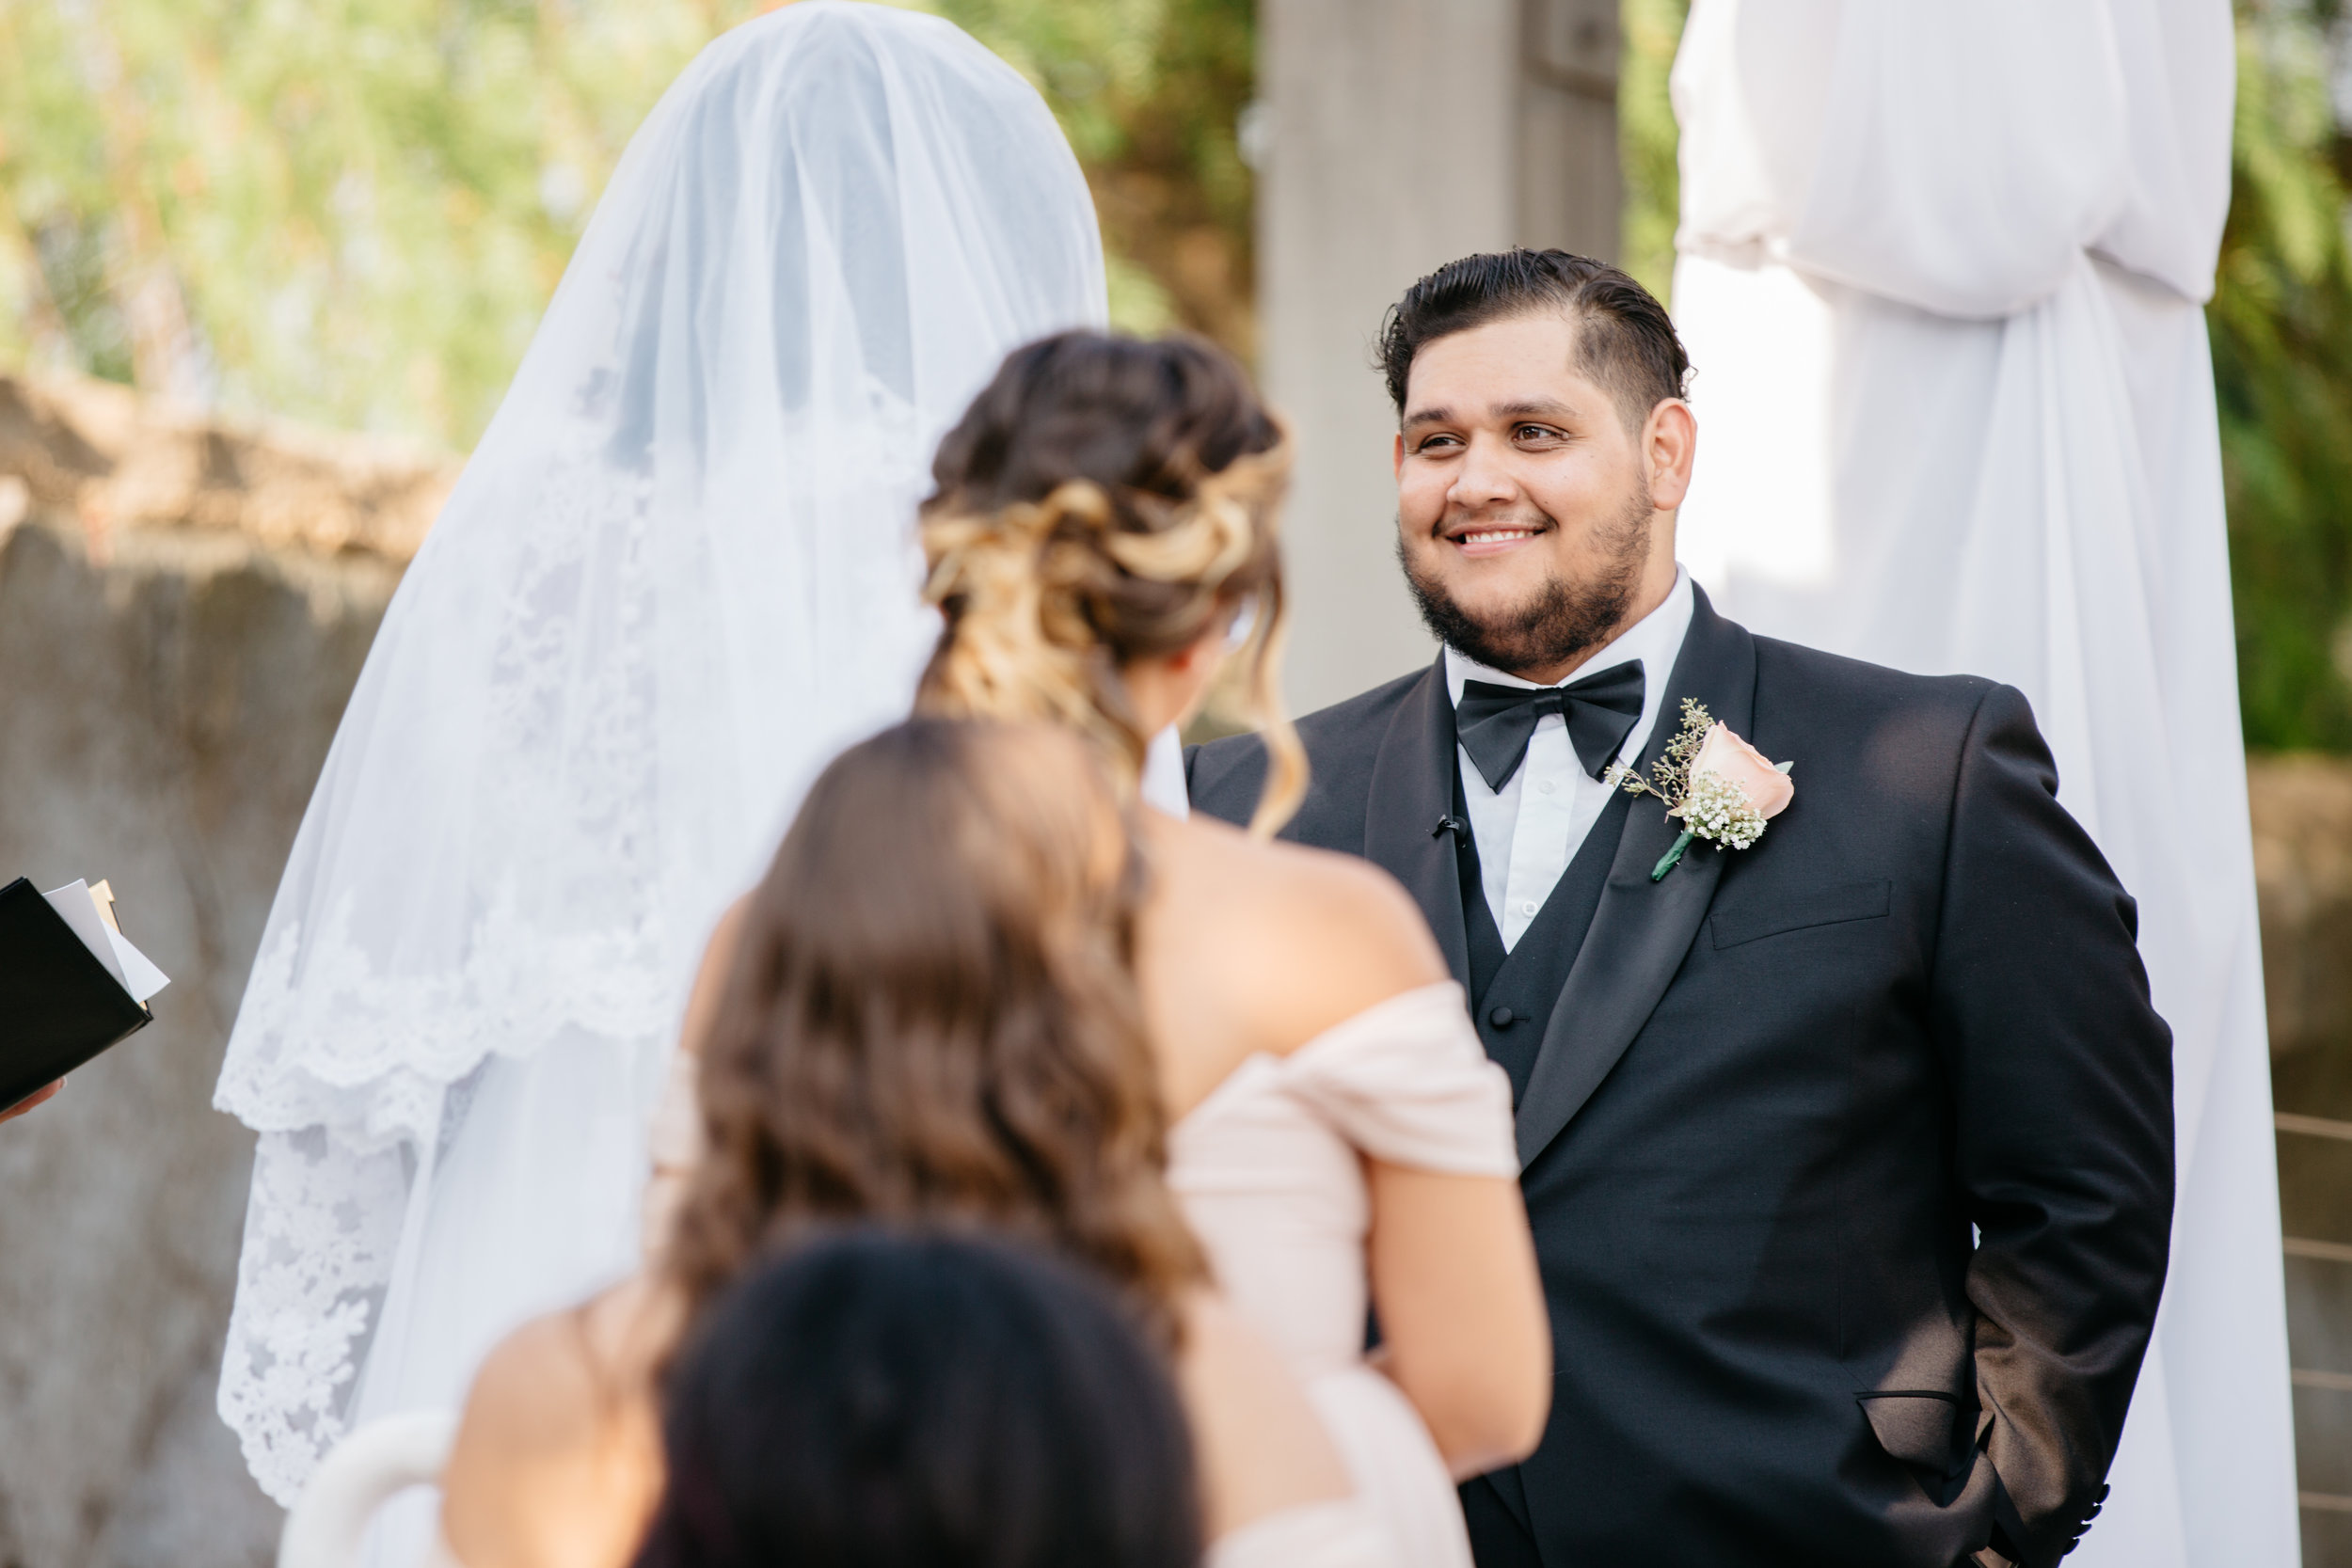 The Vineyard Wedding Jenna Bells and Laces Photography-13.jpg